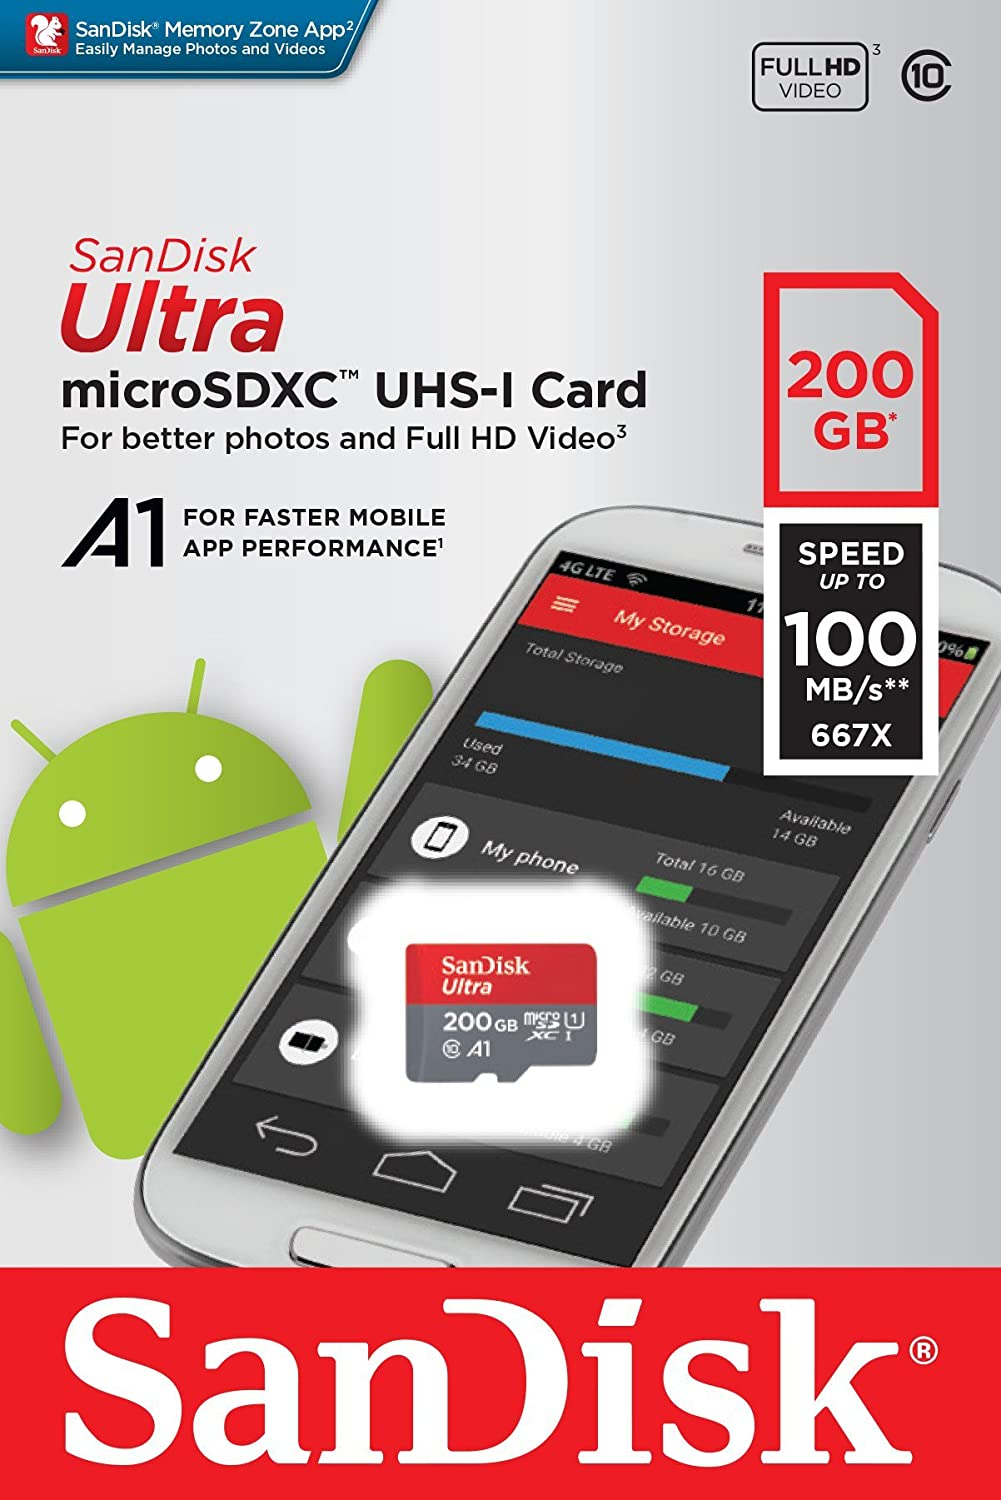 100MBs A1 U1 C10 Works with SanDisk SanDisk Ultra 200GB MicroSDXC Verified for Samsung SM-T817TZKATMB by SanFlash